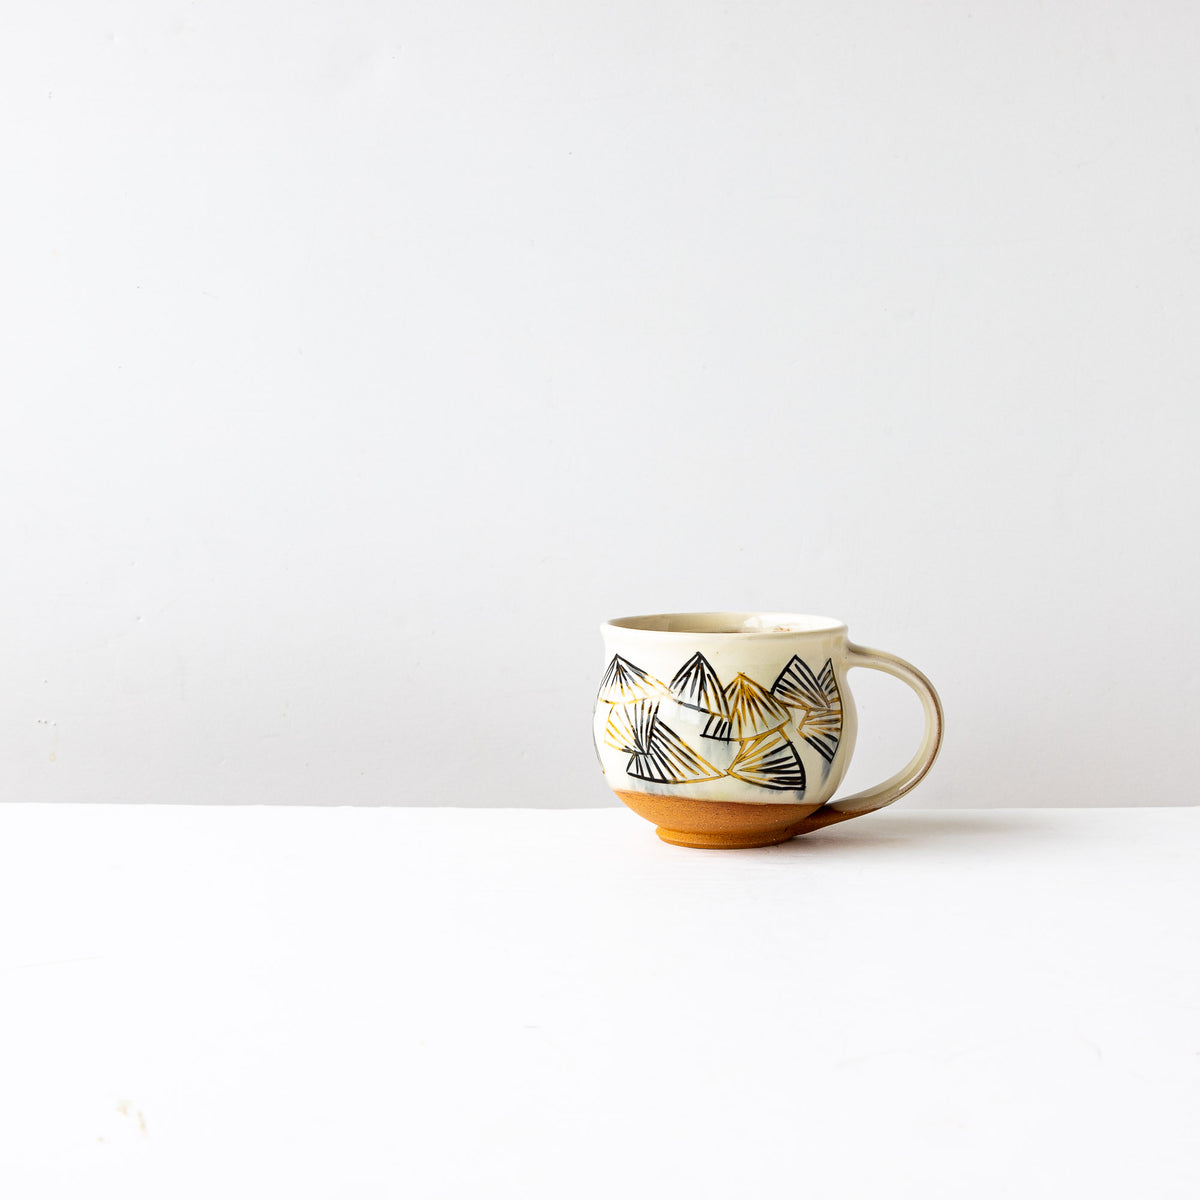 Black & Gold Pattern - Handmade Mishima Round Mug With Folding Fan Pattern - Sold by Chic & Basta